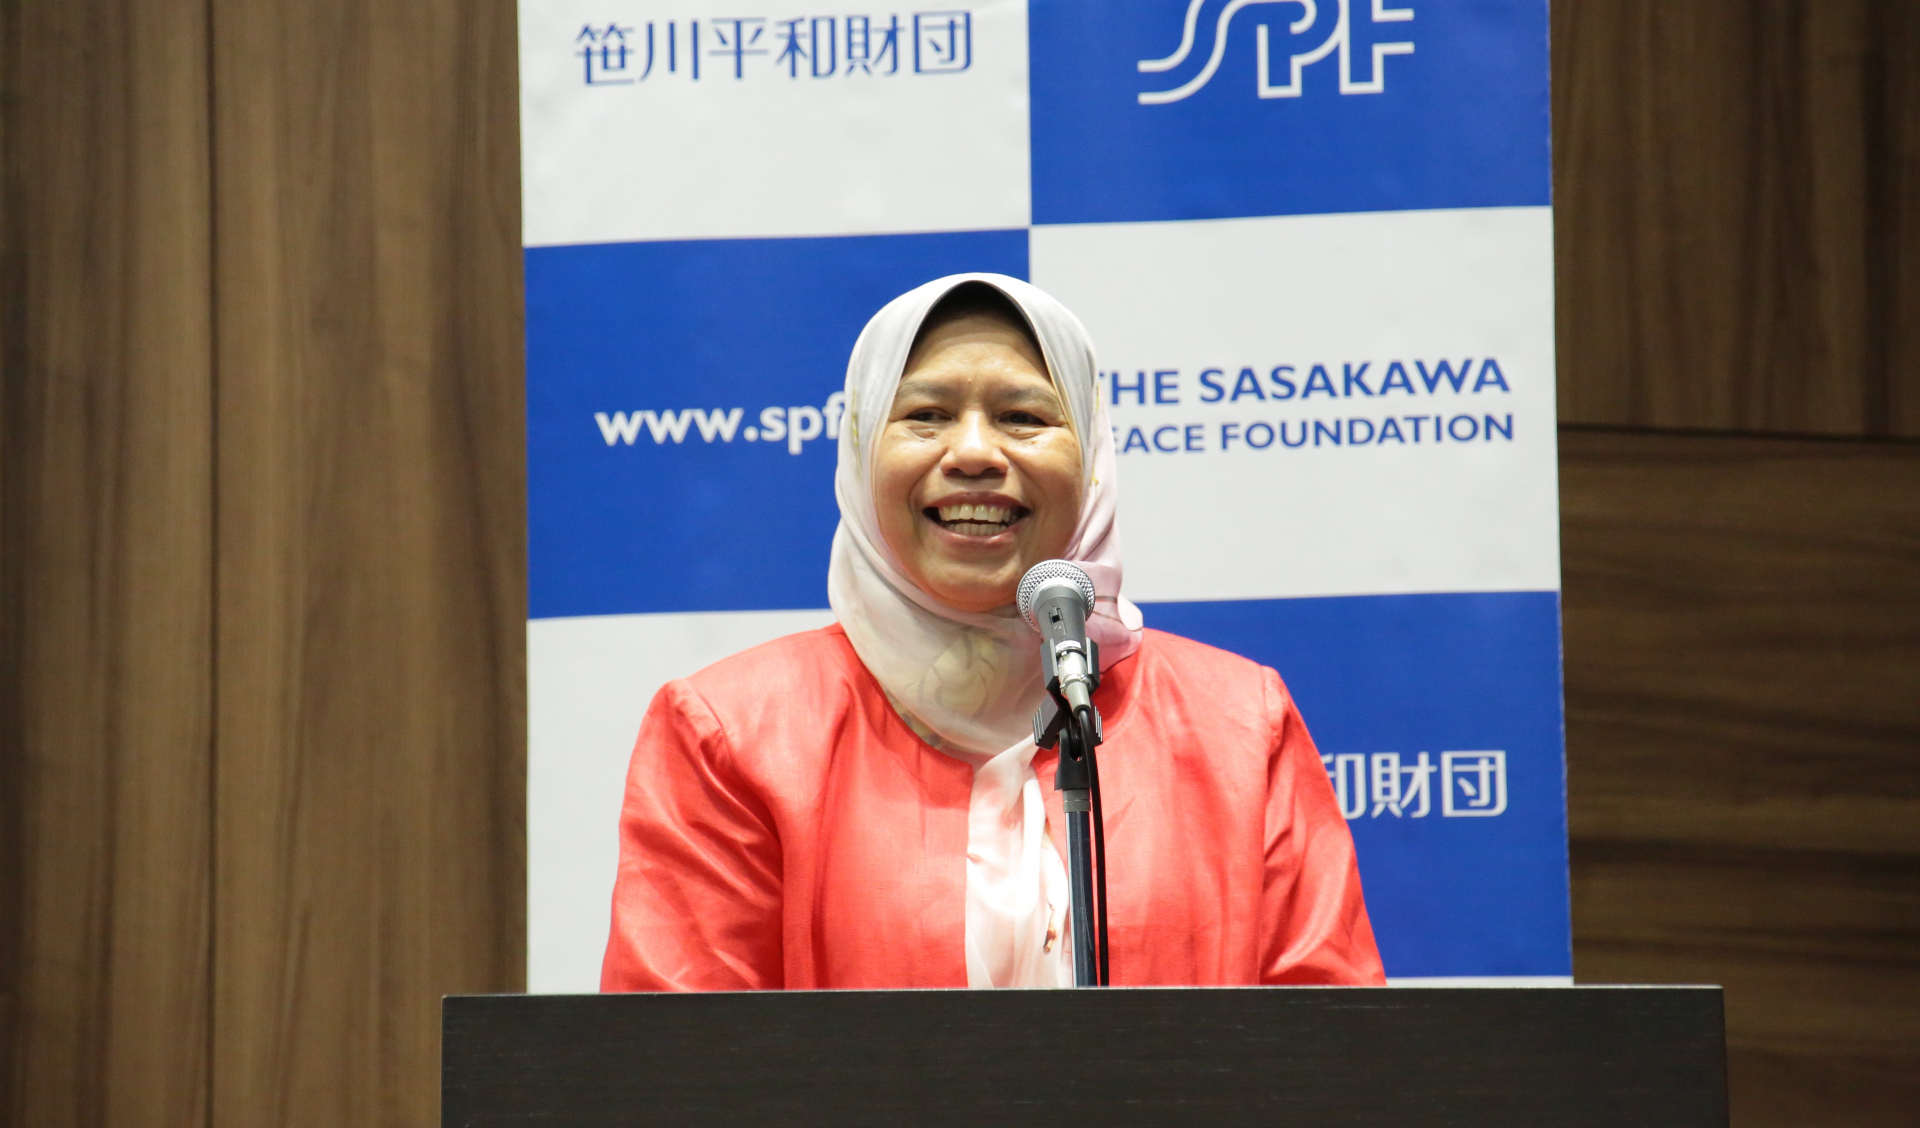 Lecture by Malaysian Minister of Housing and Local Government Zuraida Kamaruddin